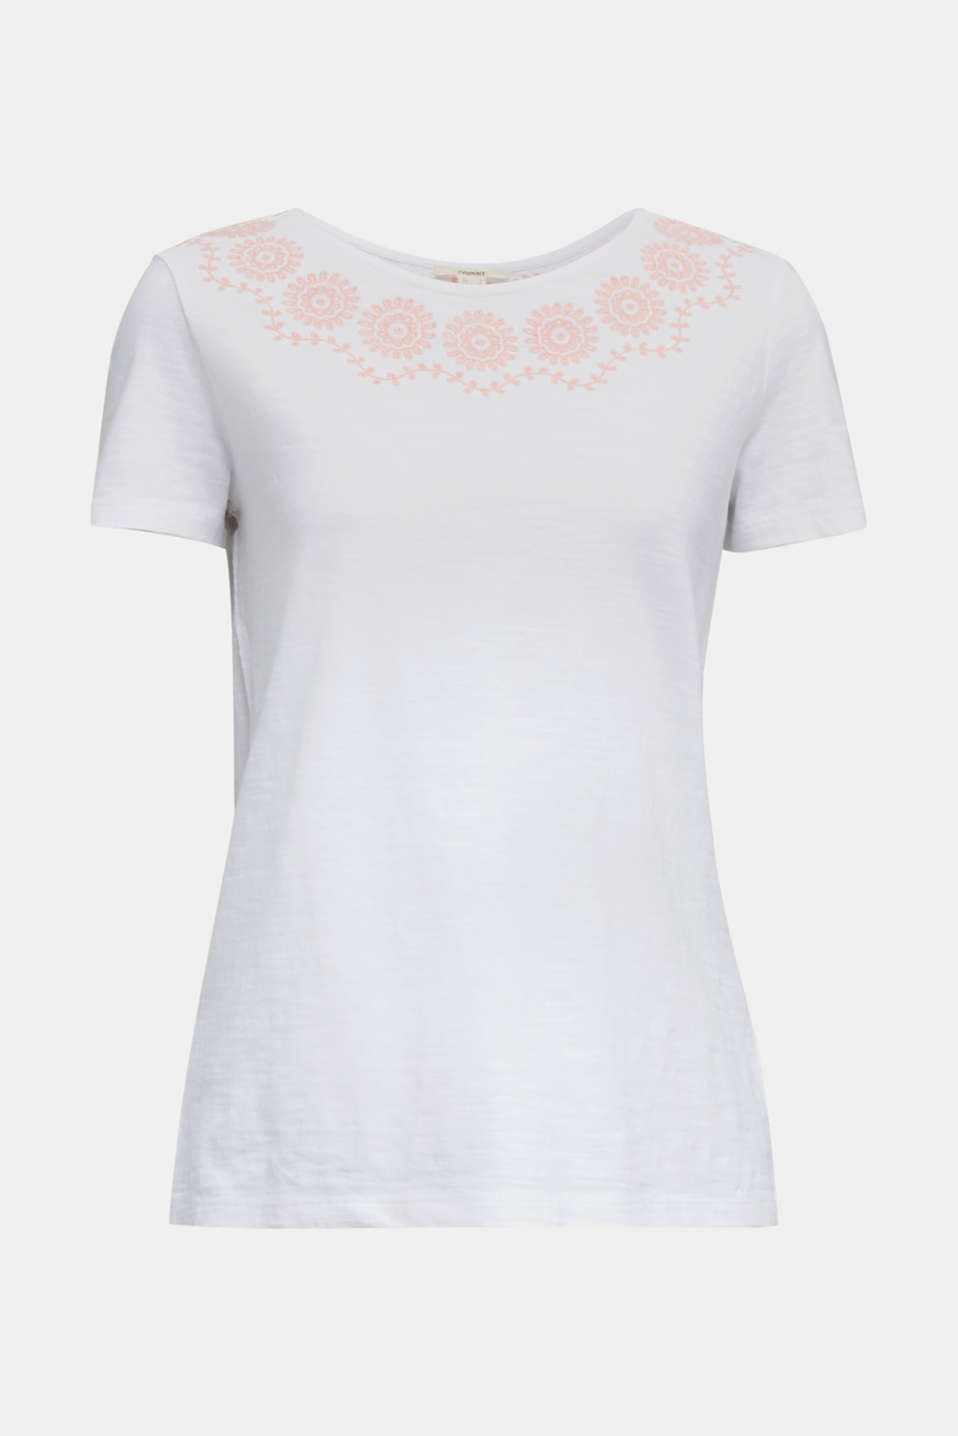 Slub top with embroidery, 100% cotton, WHITE, detail image number 7